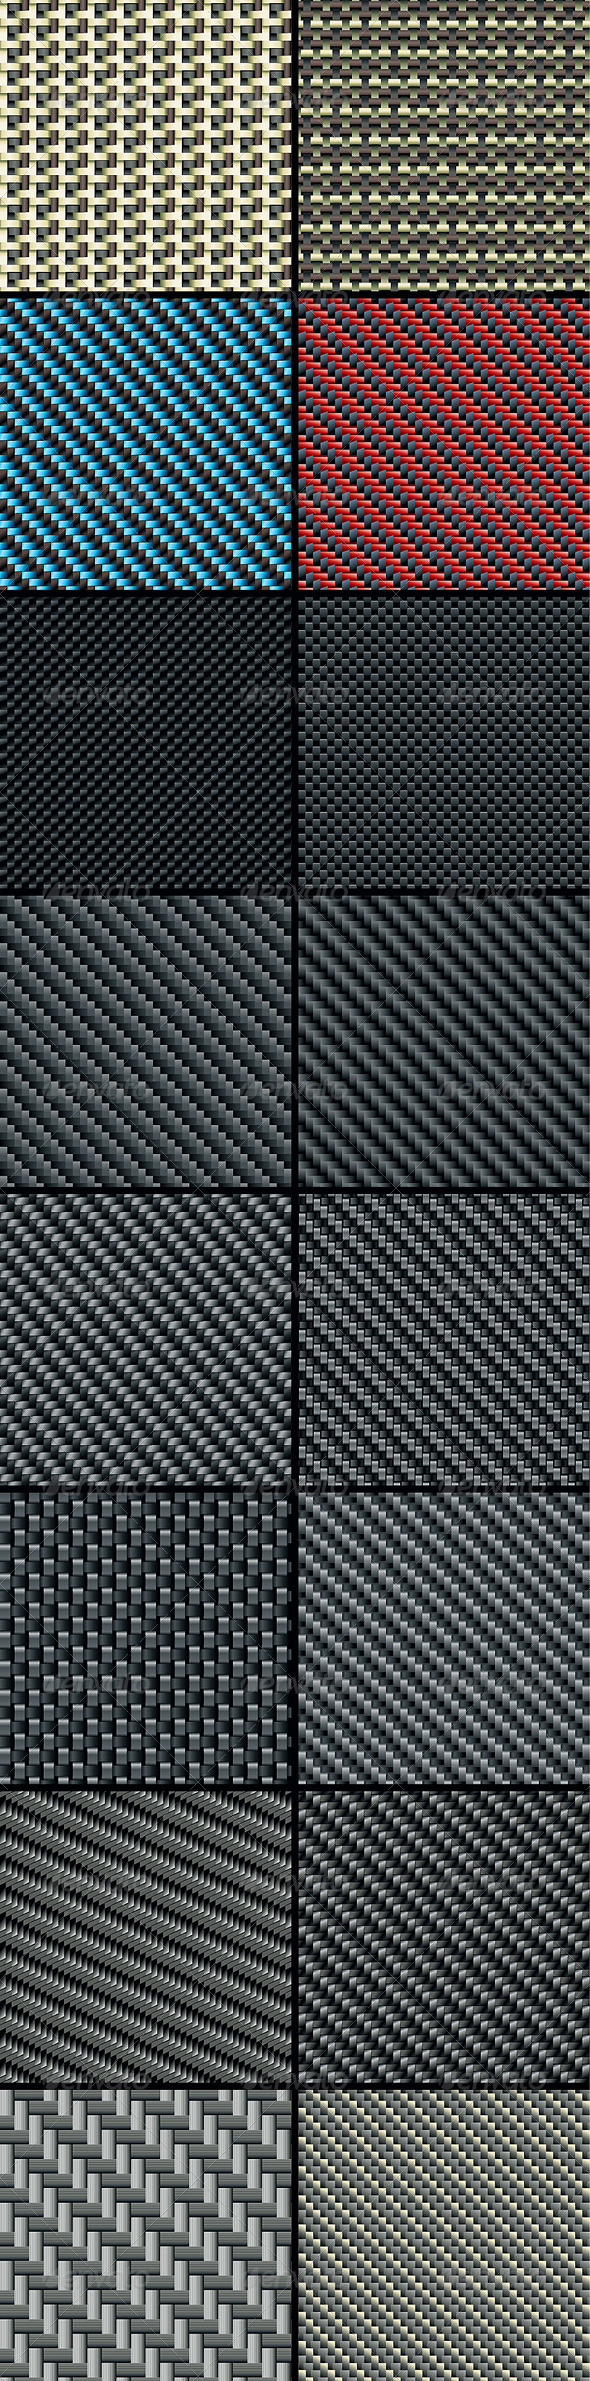 Carbon, Kevlar and Decorative Fabric - Set Four - Patterns Decorative